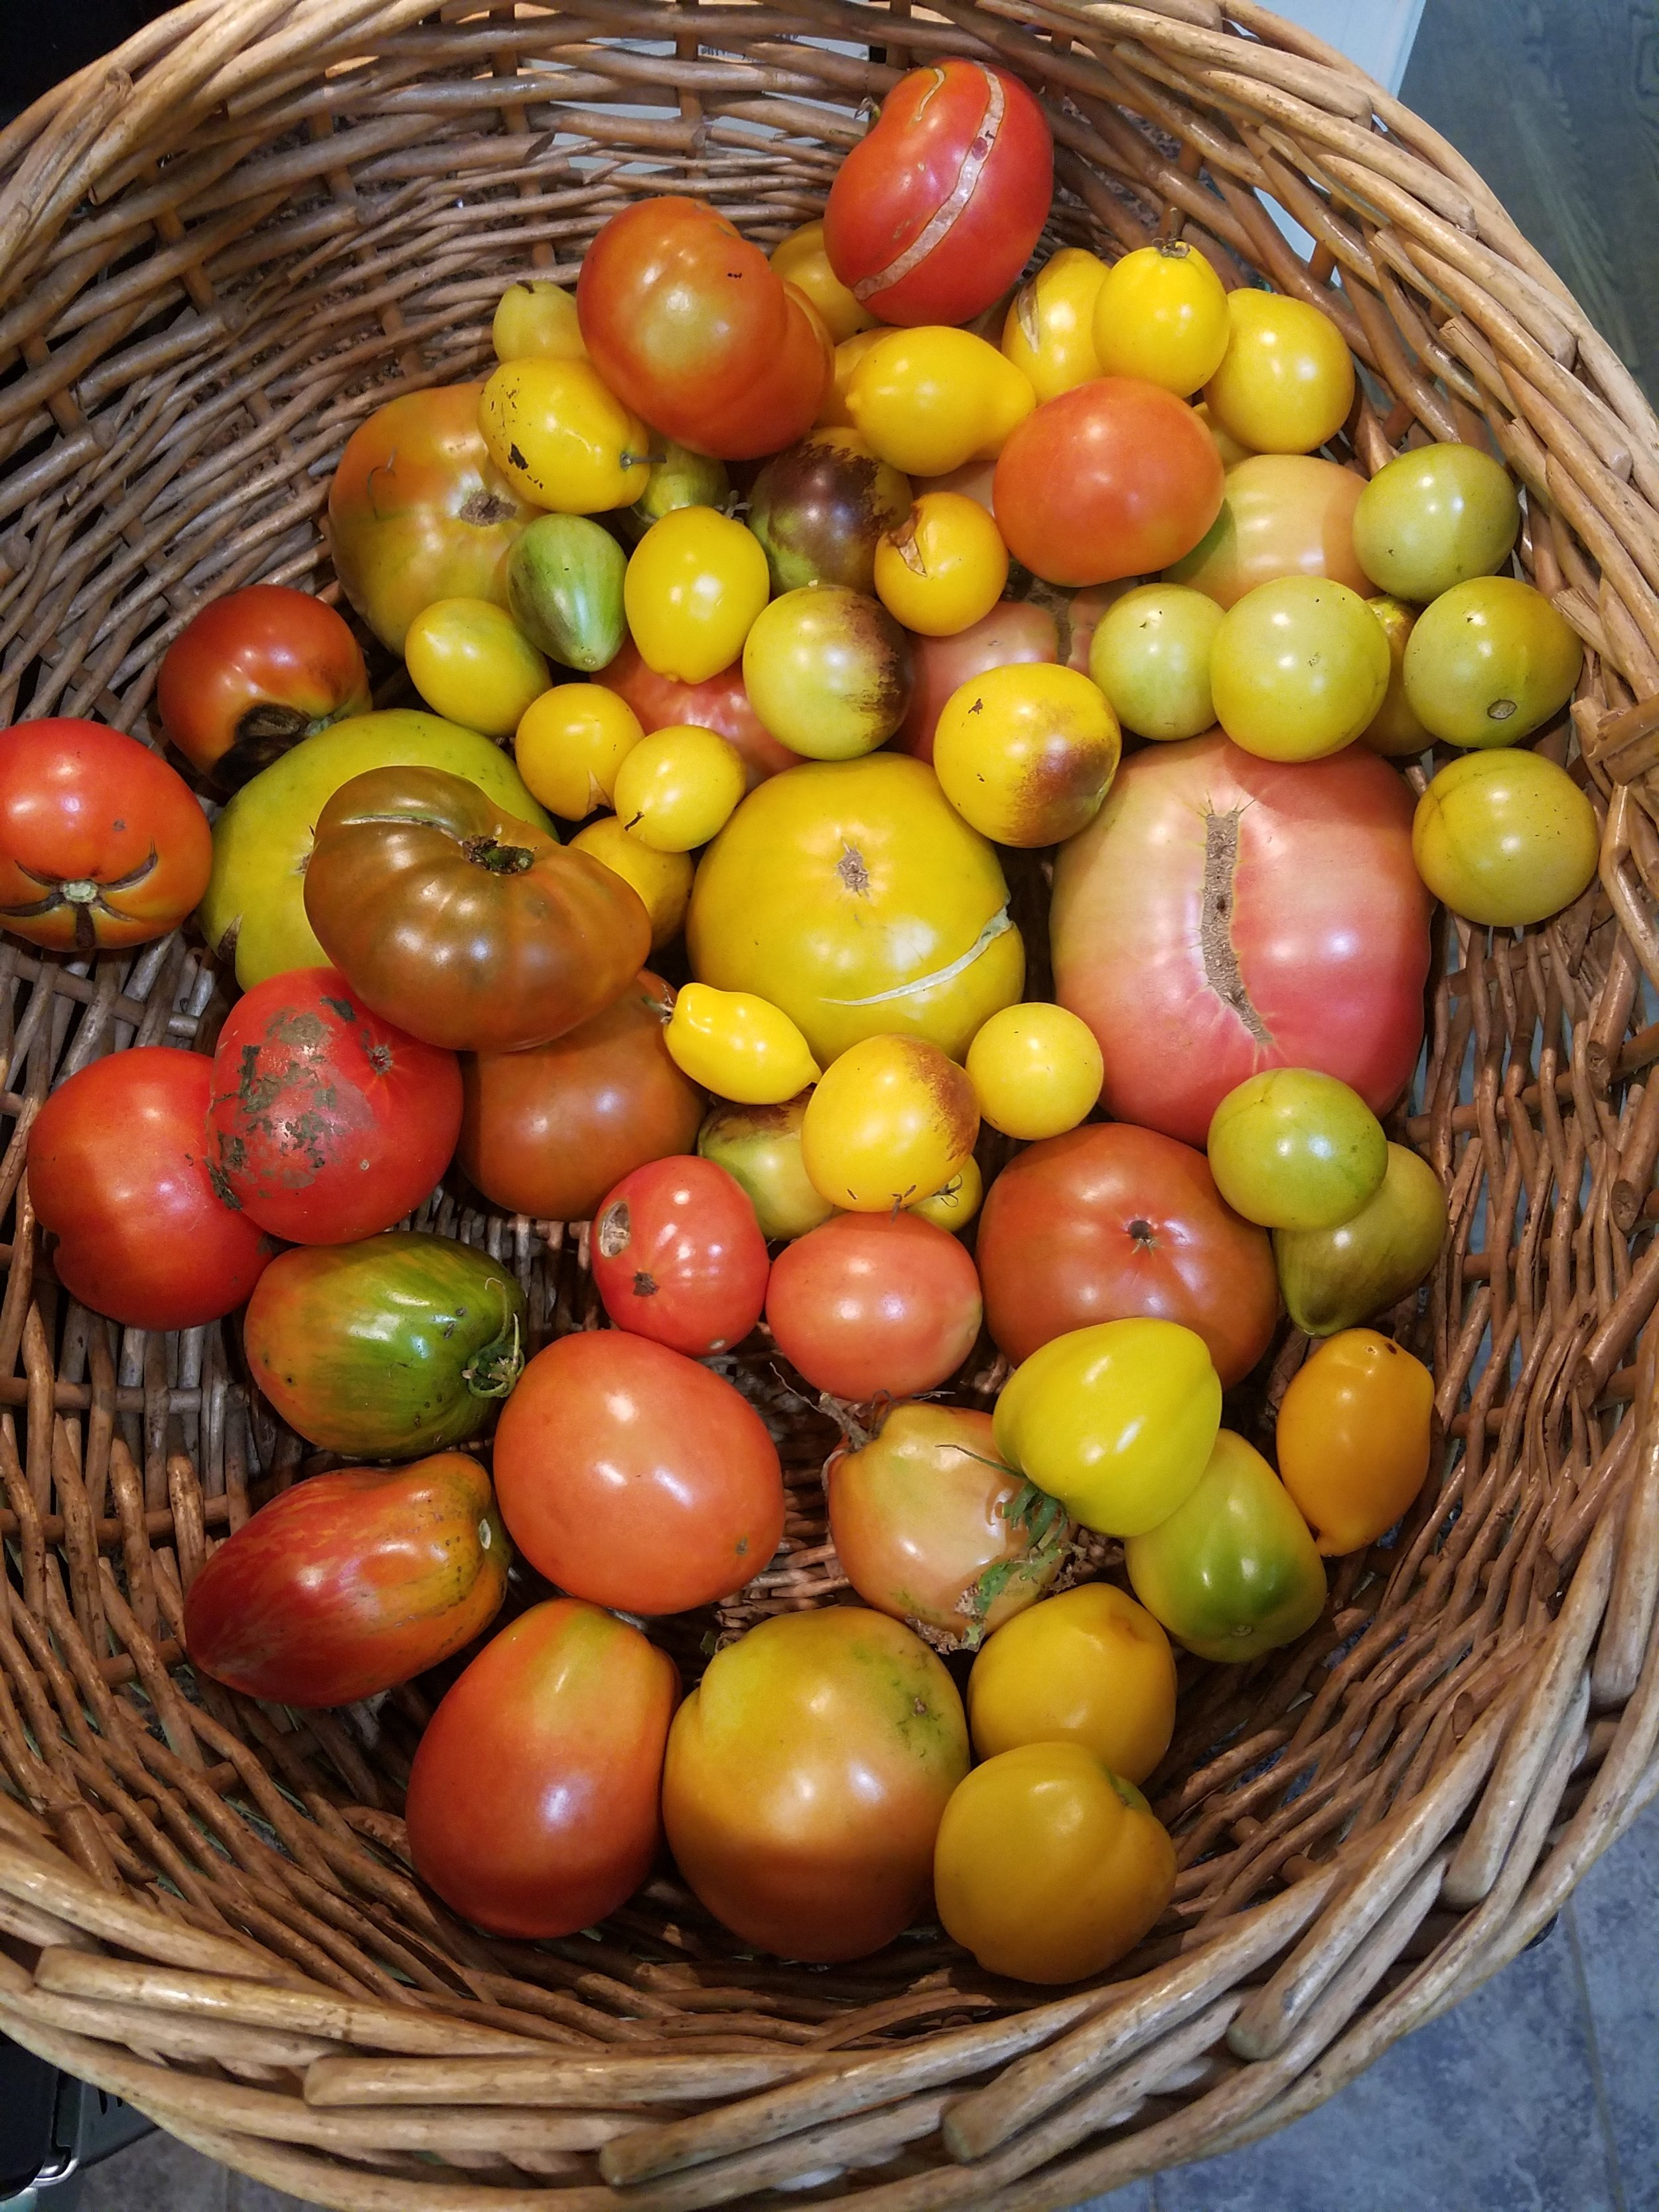 Tomato diversity from a 2018 August harvest